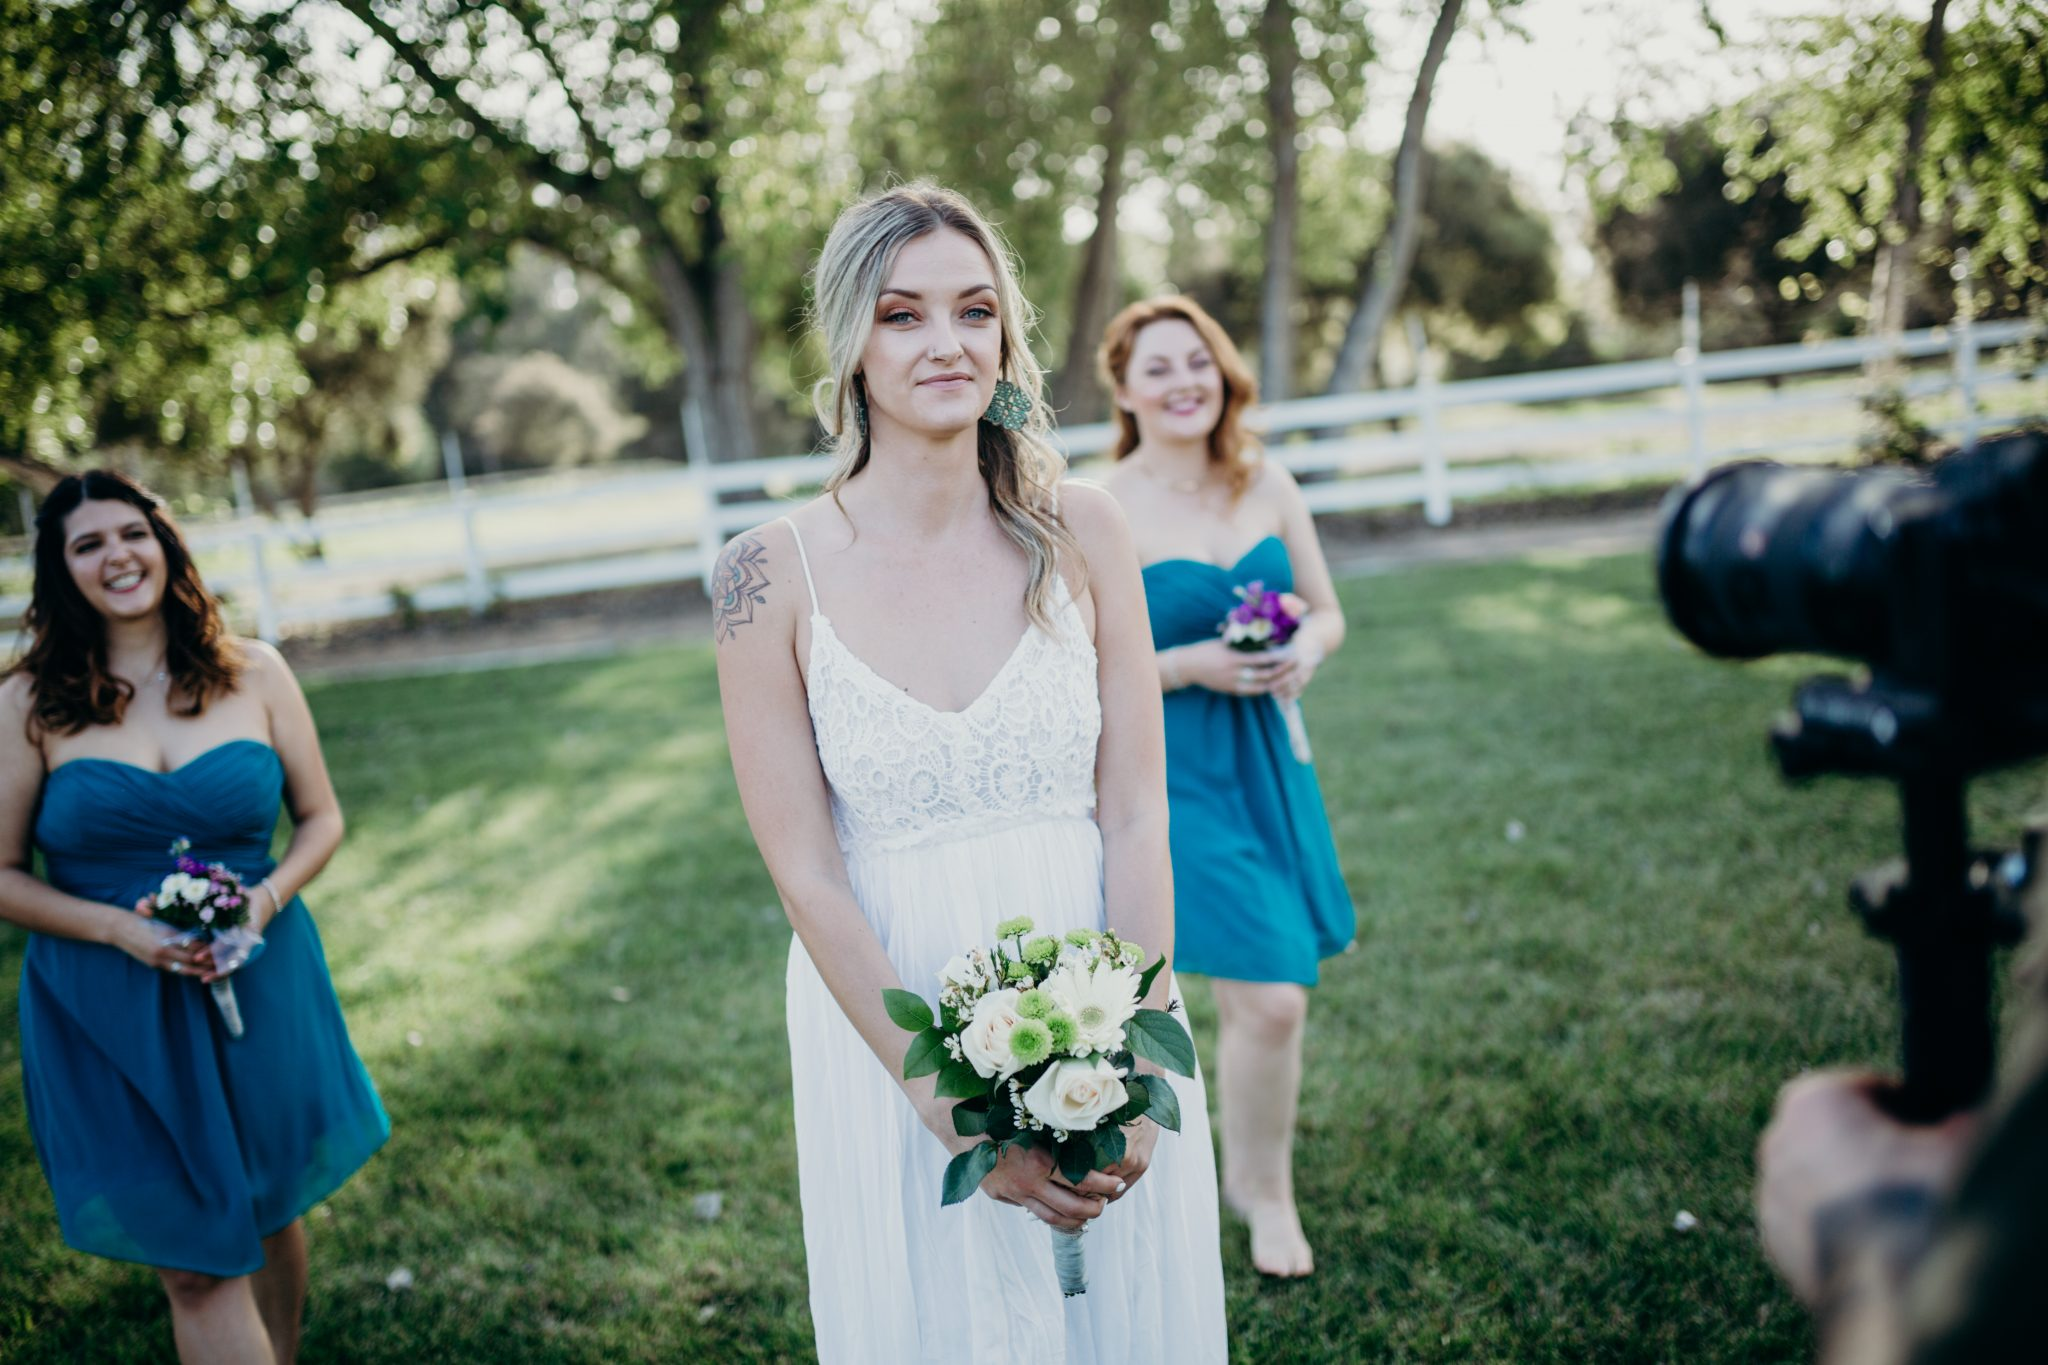 One of our talented videographers capturing the bride and her bridesmaids on her wedding day. It's an honor for us to be able to capture your perfect day.